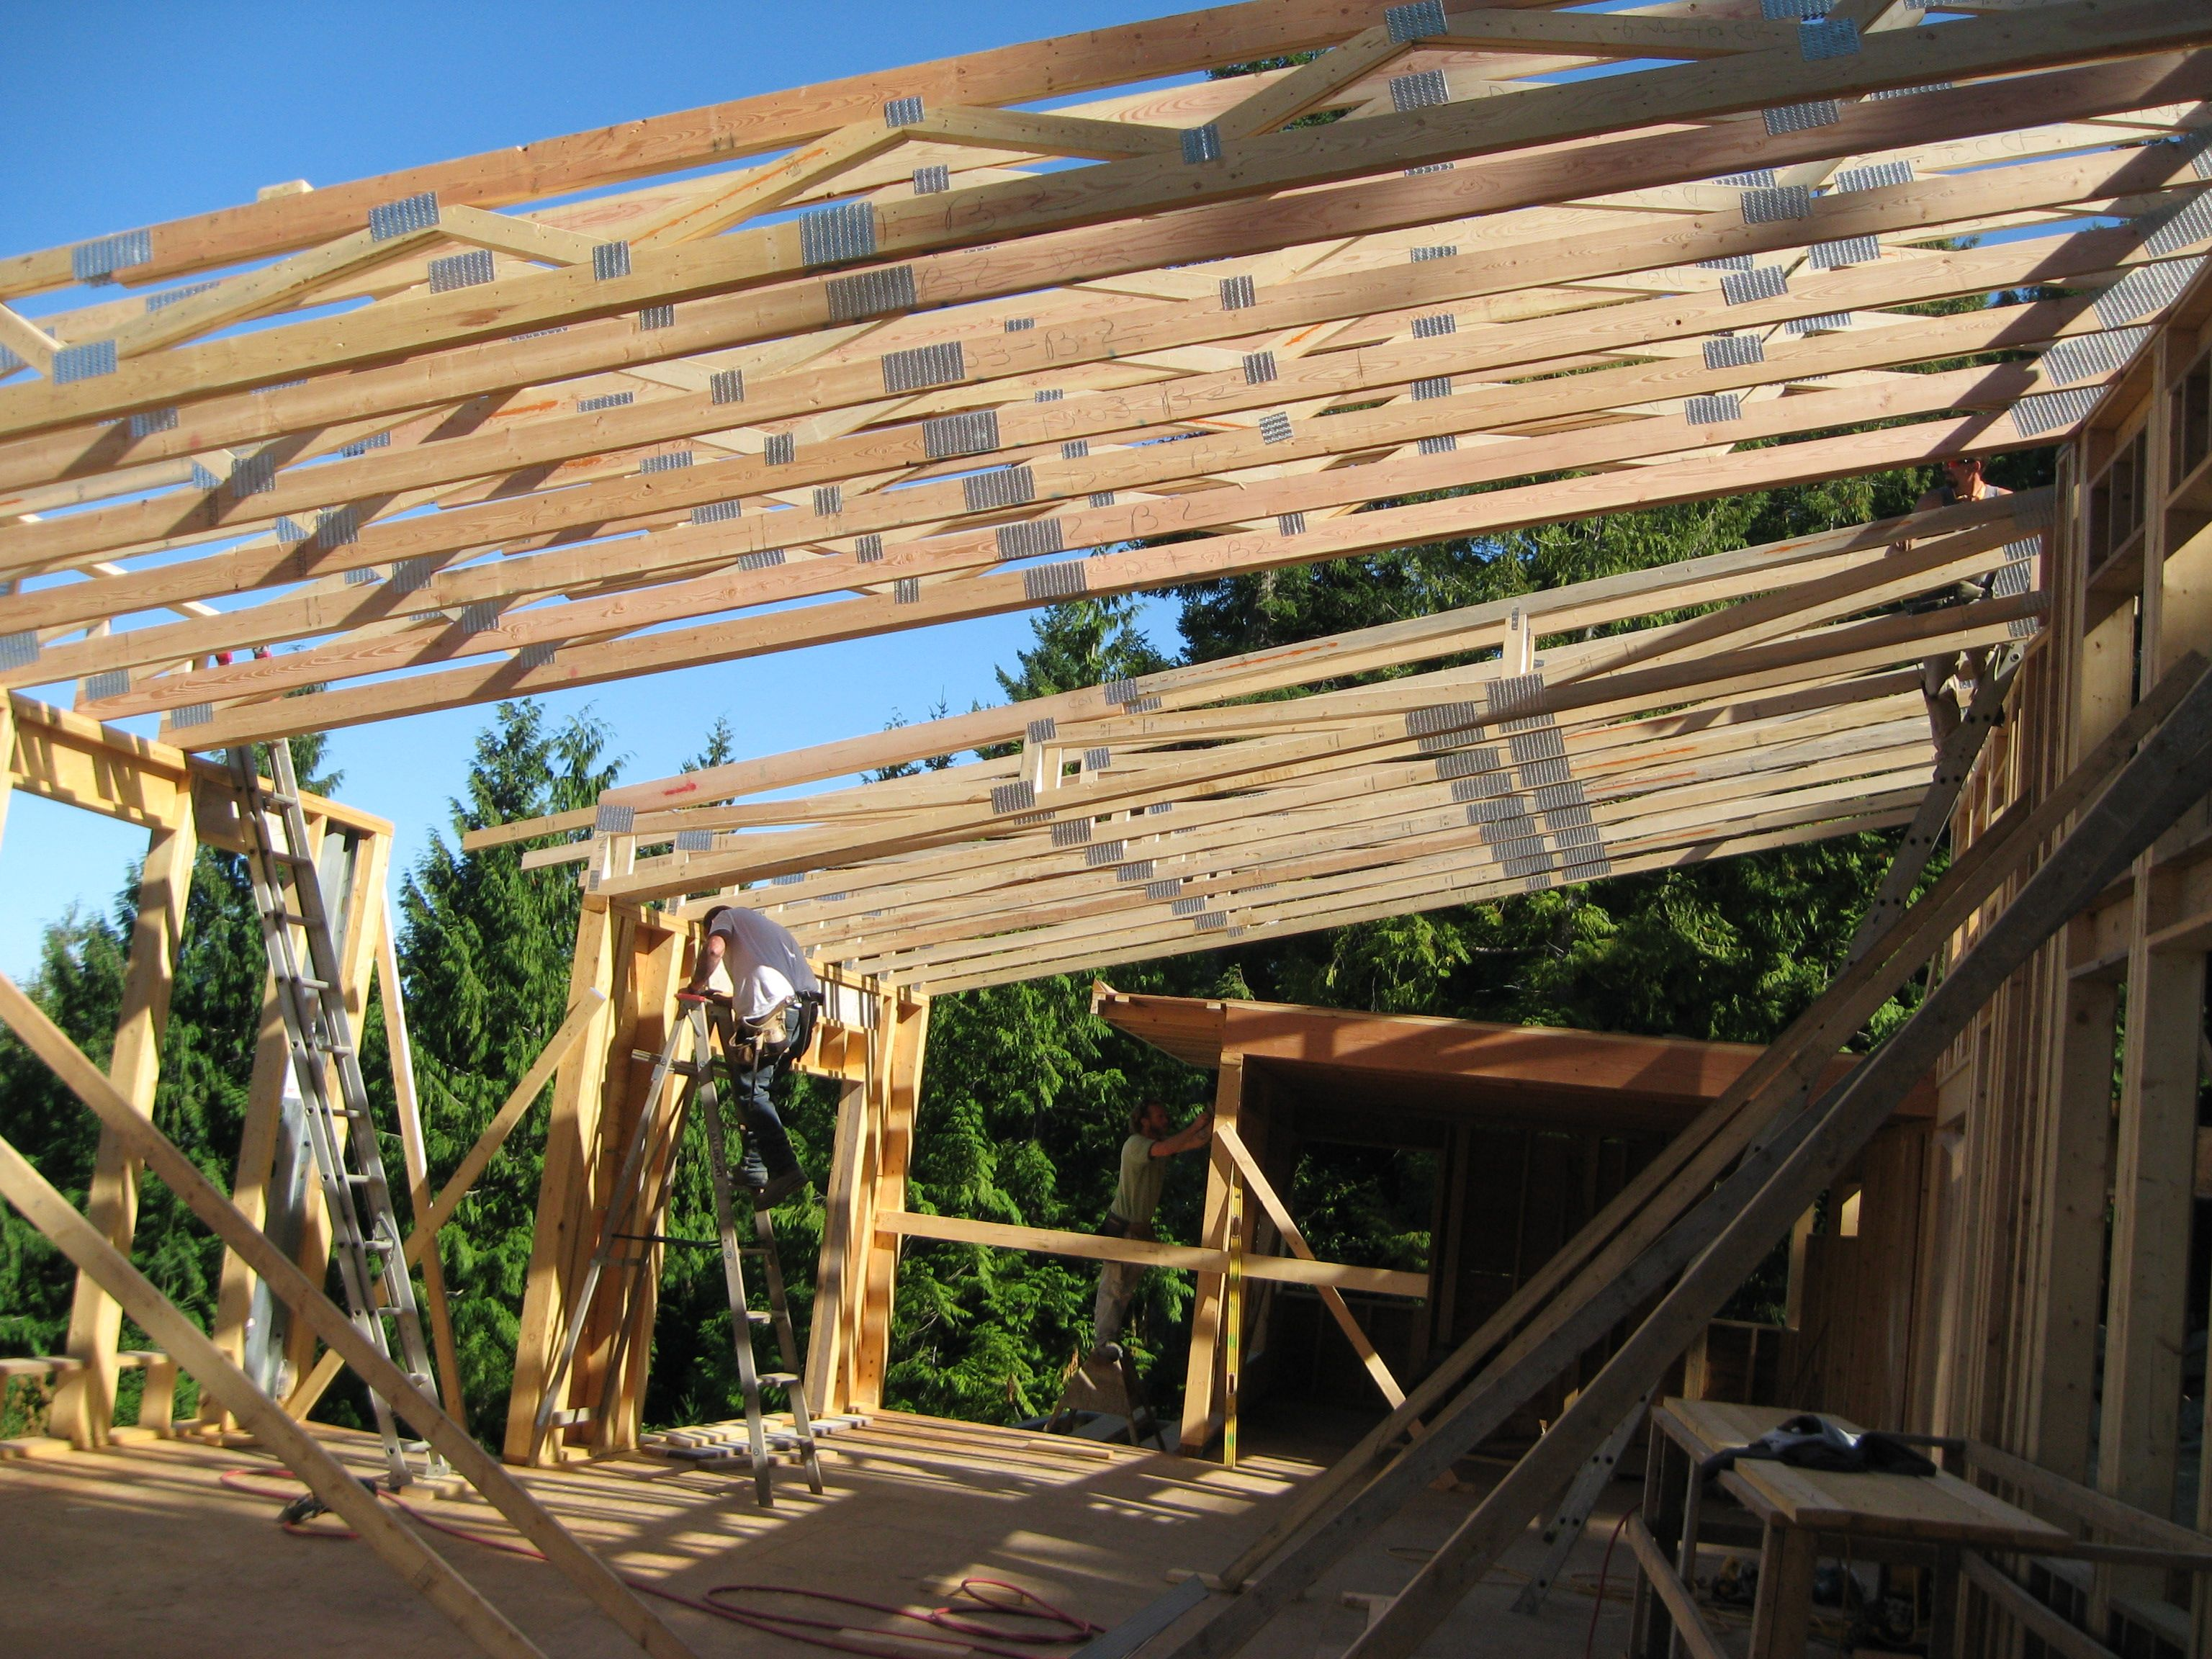 Pics For Flat Roof Trusses Roof Trusses Flat Roof Roof